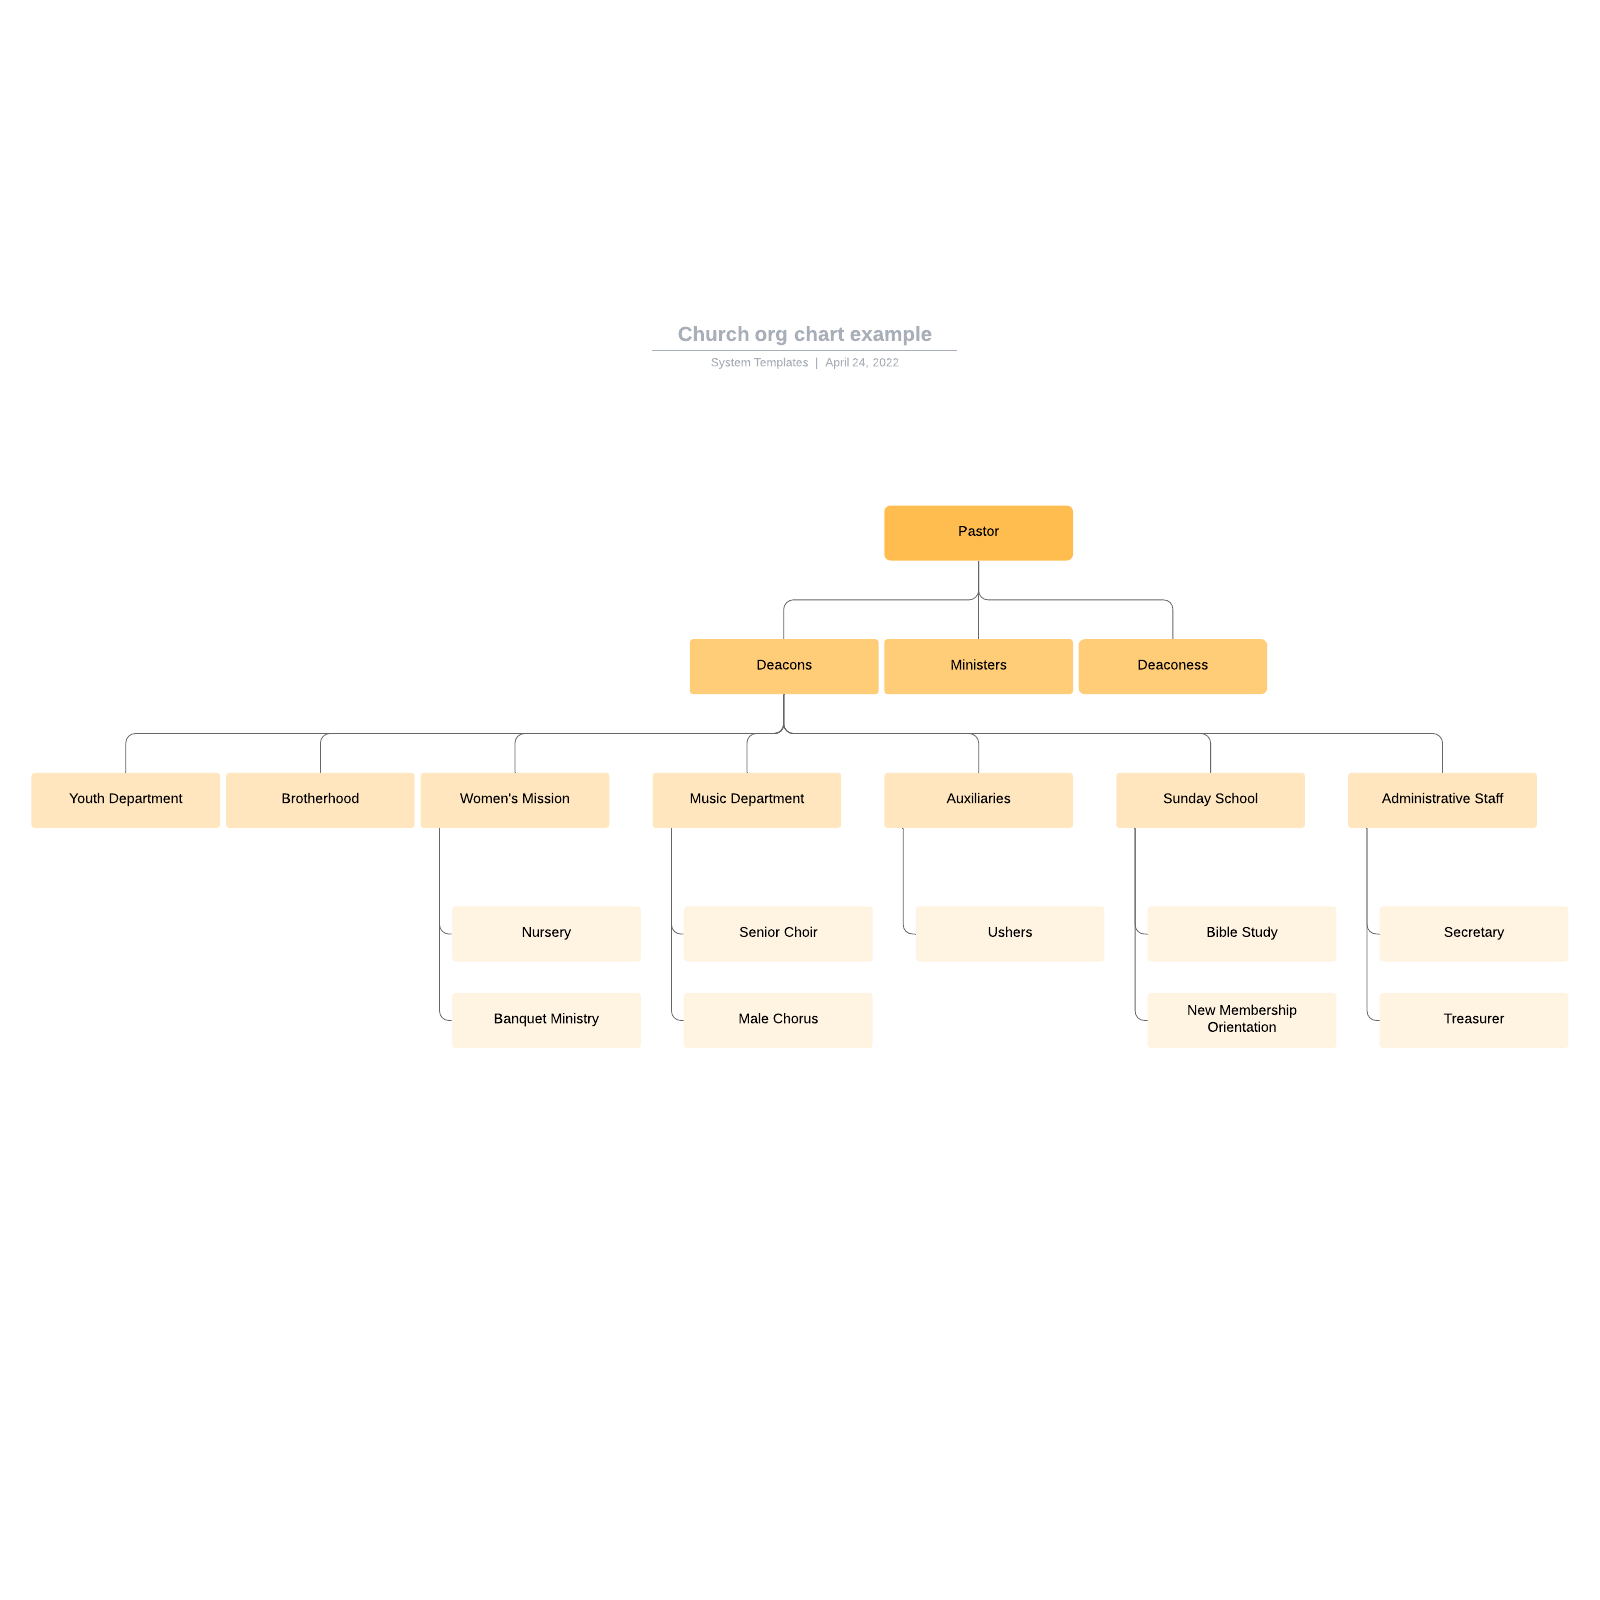 Church org chart example